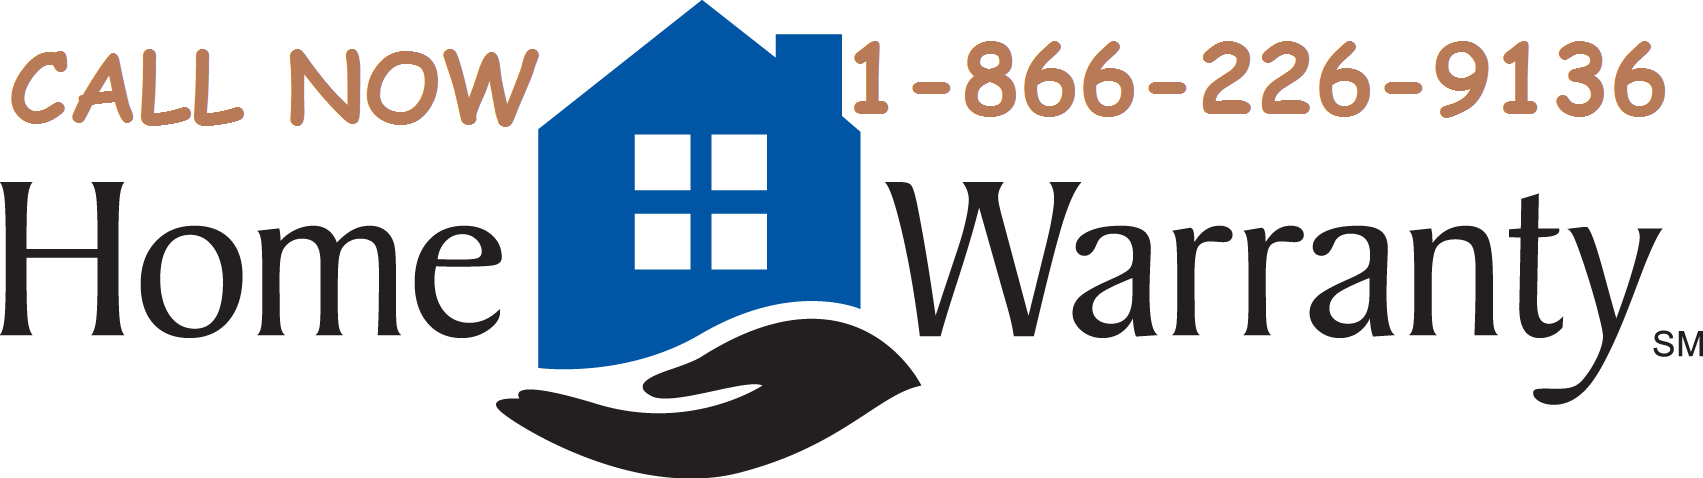 HOME WARRANTY Discounts - Call now +1-866-226-9136